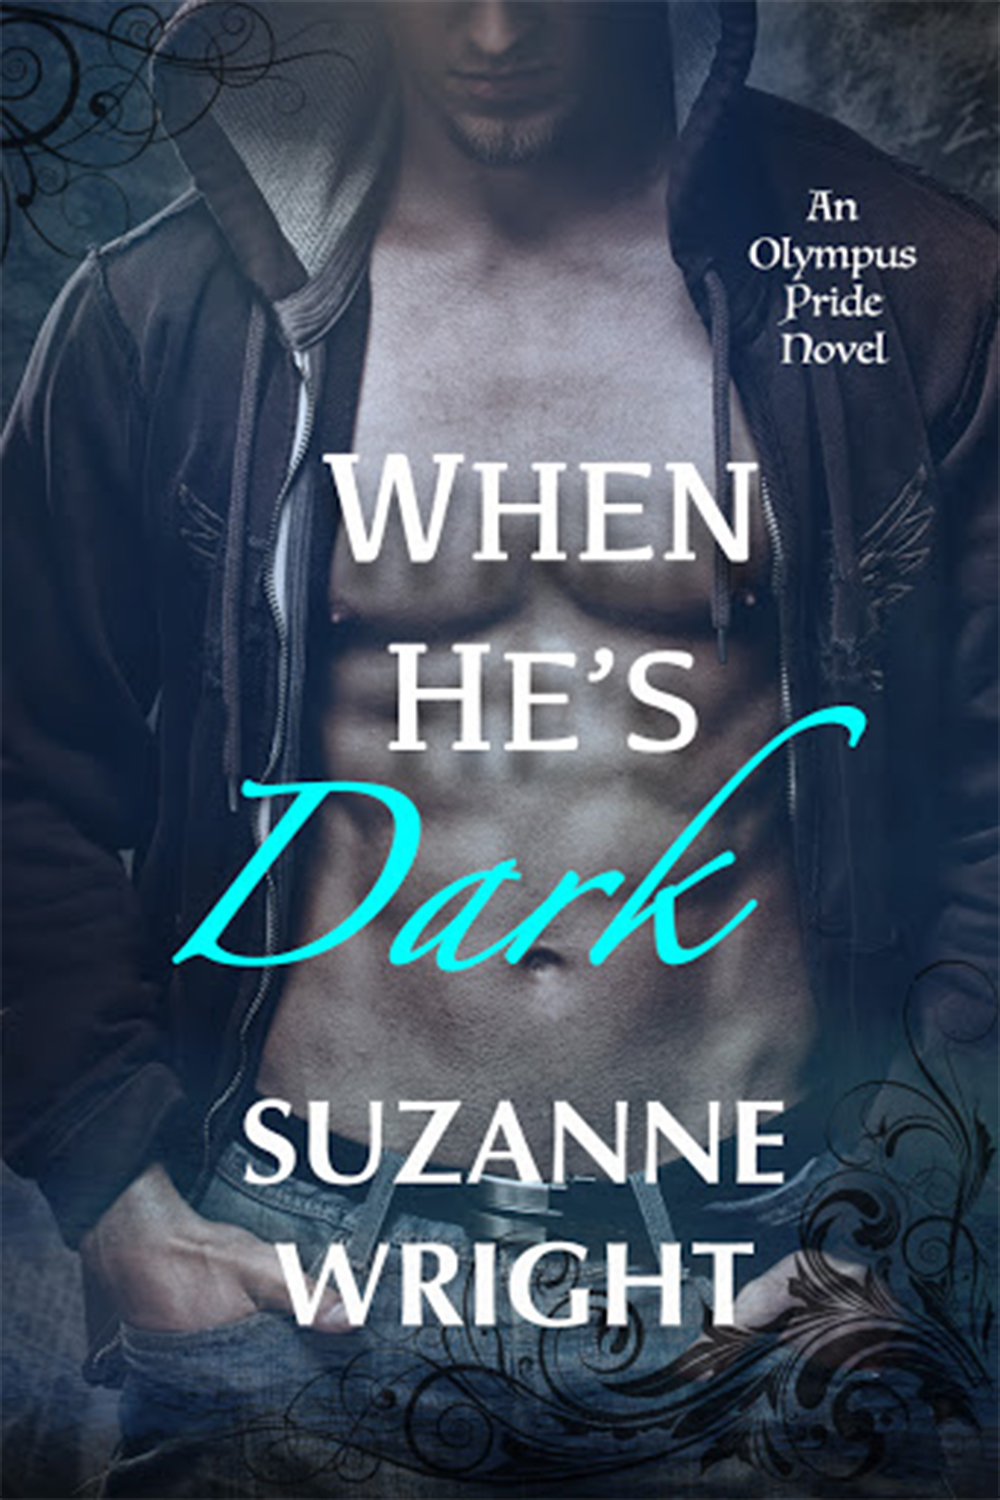 S1 Ep5 When He's Dark by Suzanne Wright